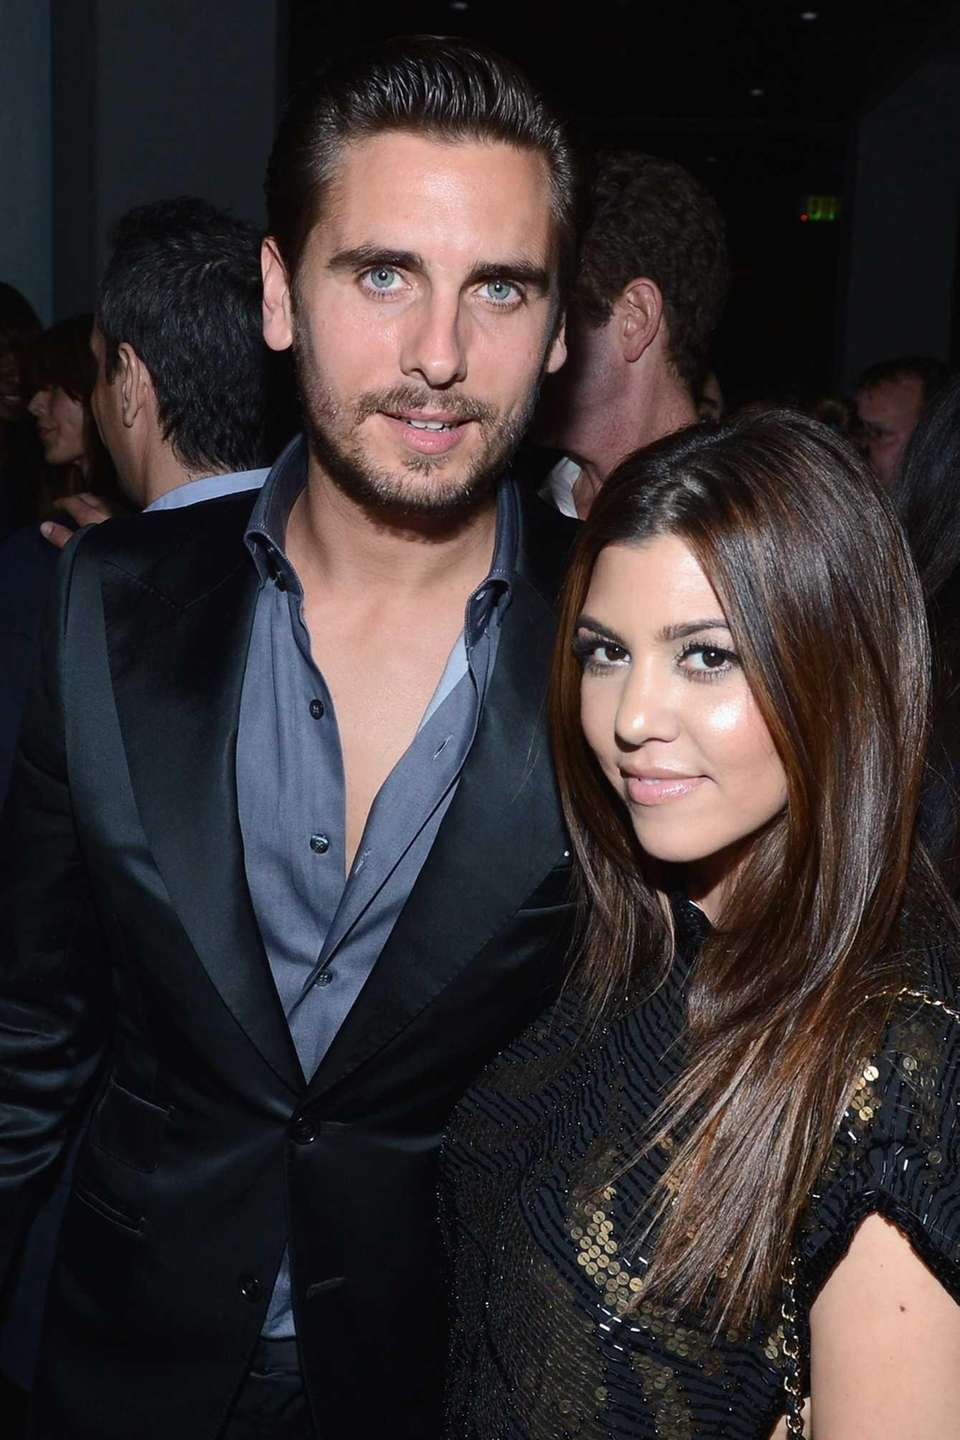 Eastport's Scott Disick, Kourtney Kardashian's ex-boyfriend and father